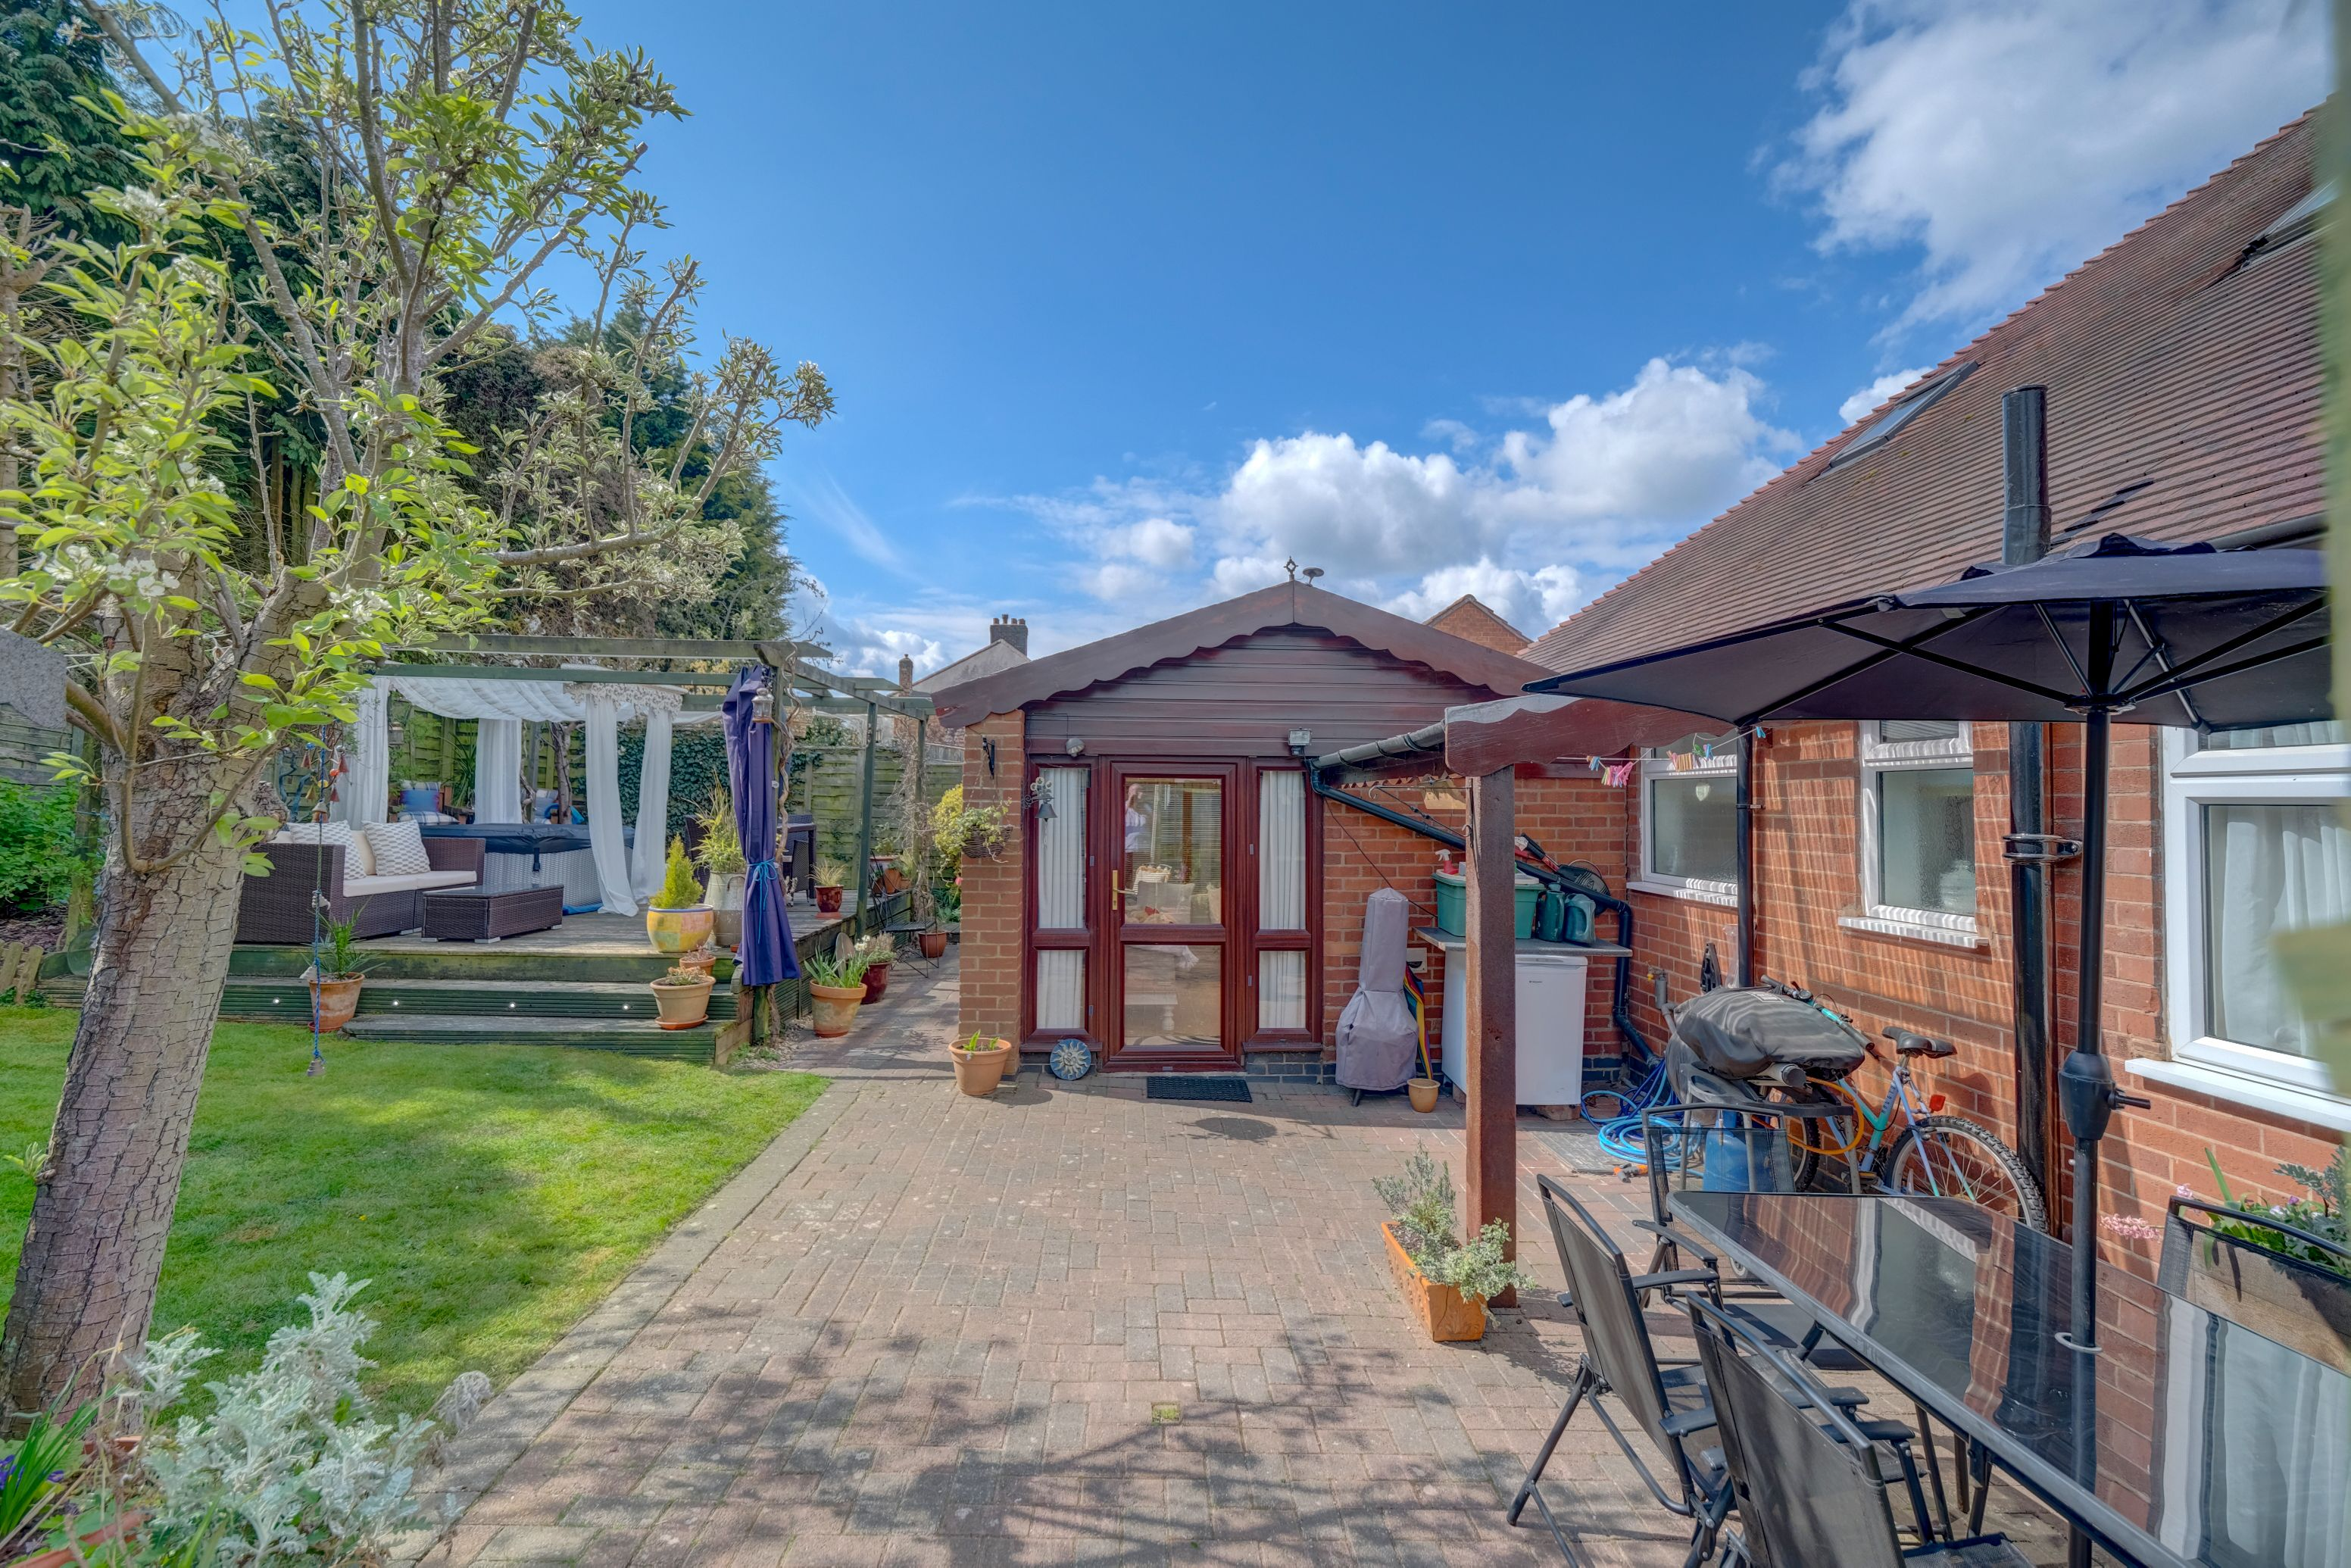 4 bed detached house for sale in Stanley Road, Hinckley, LE10, Hinckley  - Property Image 22